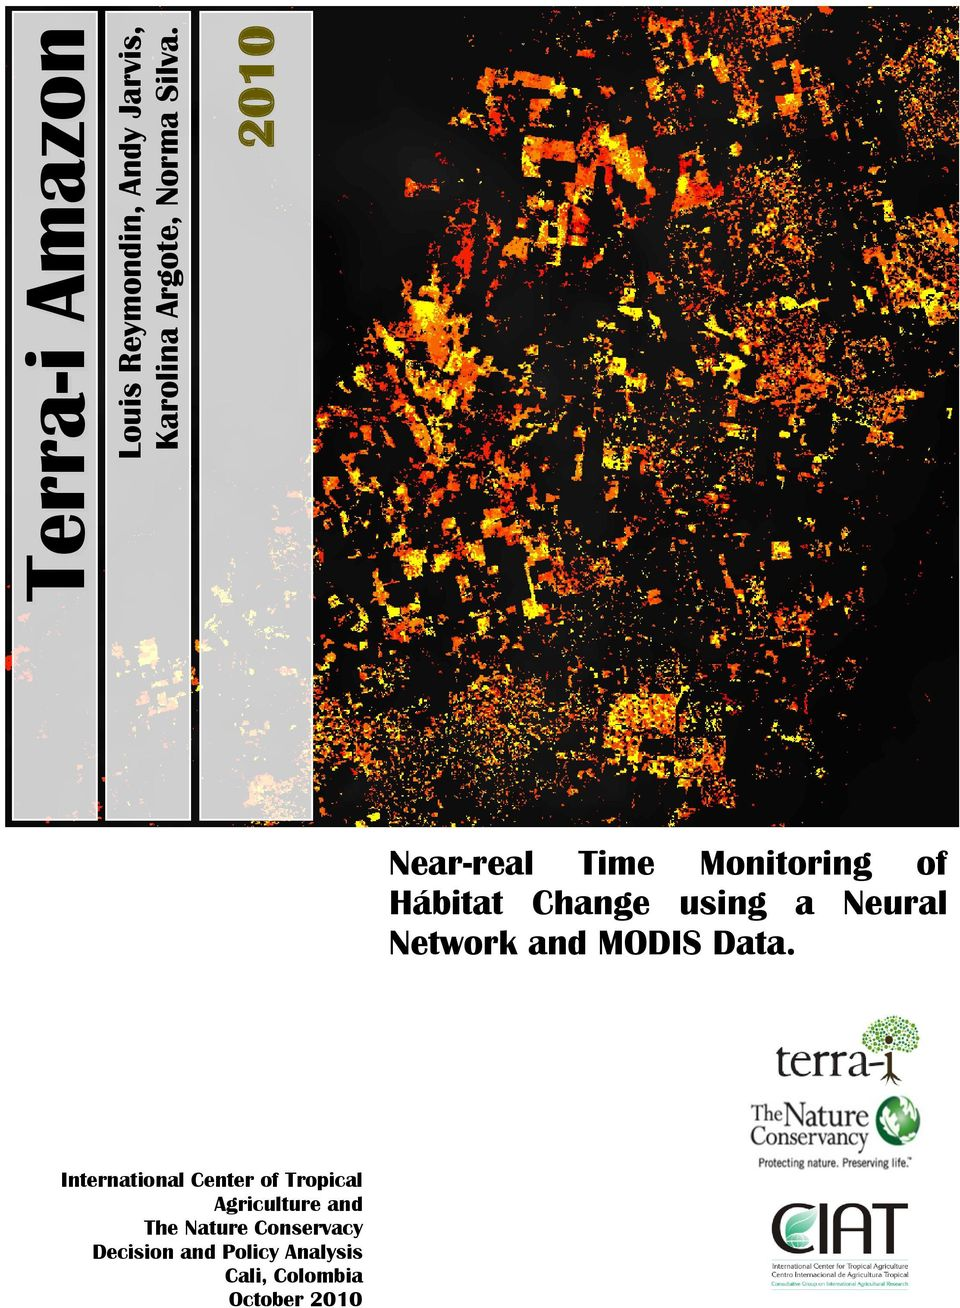 2010 Near-real Time Monitoring of Hábitat Change using a Neural Network